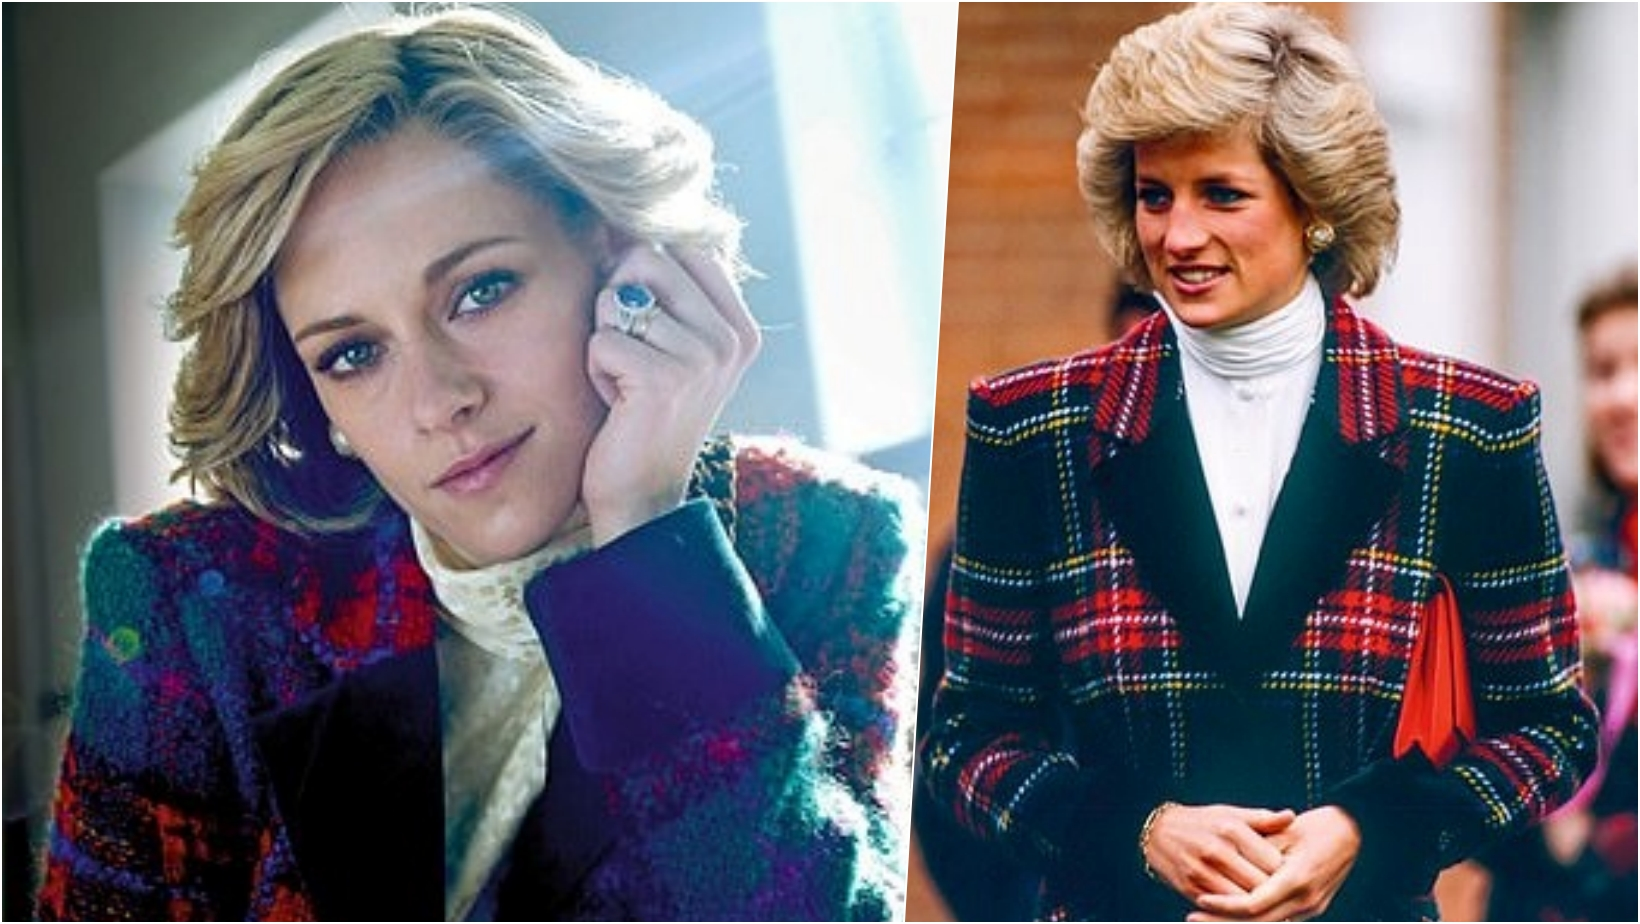 6 facebook cover 33.jpg - Kristen Stewart Reveals That Being Extremely Famous At A Young Age Helped Her Understand Princess Diana For Her Spencer Movie Role